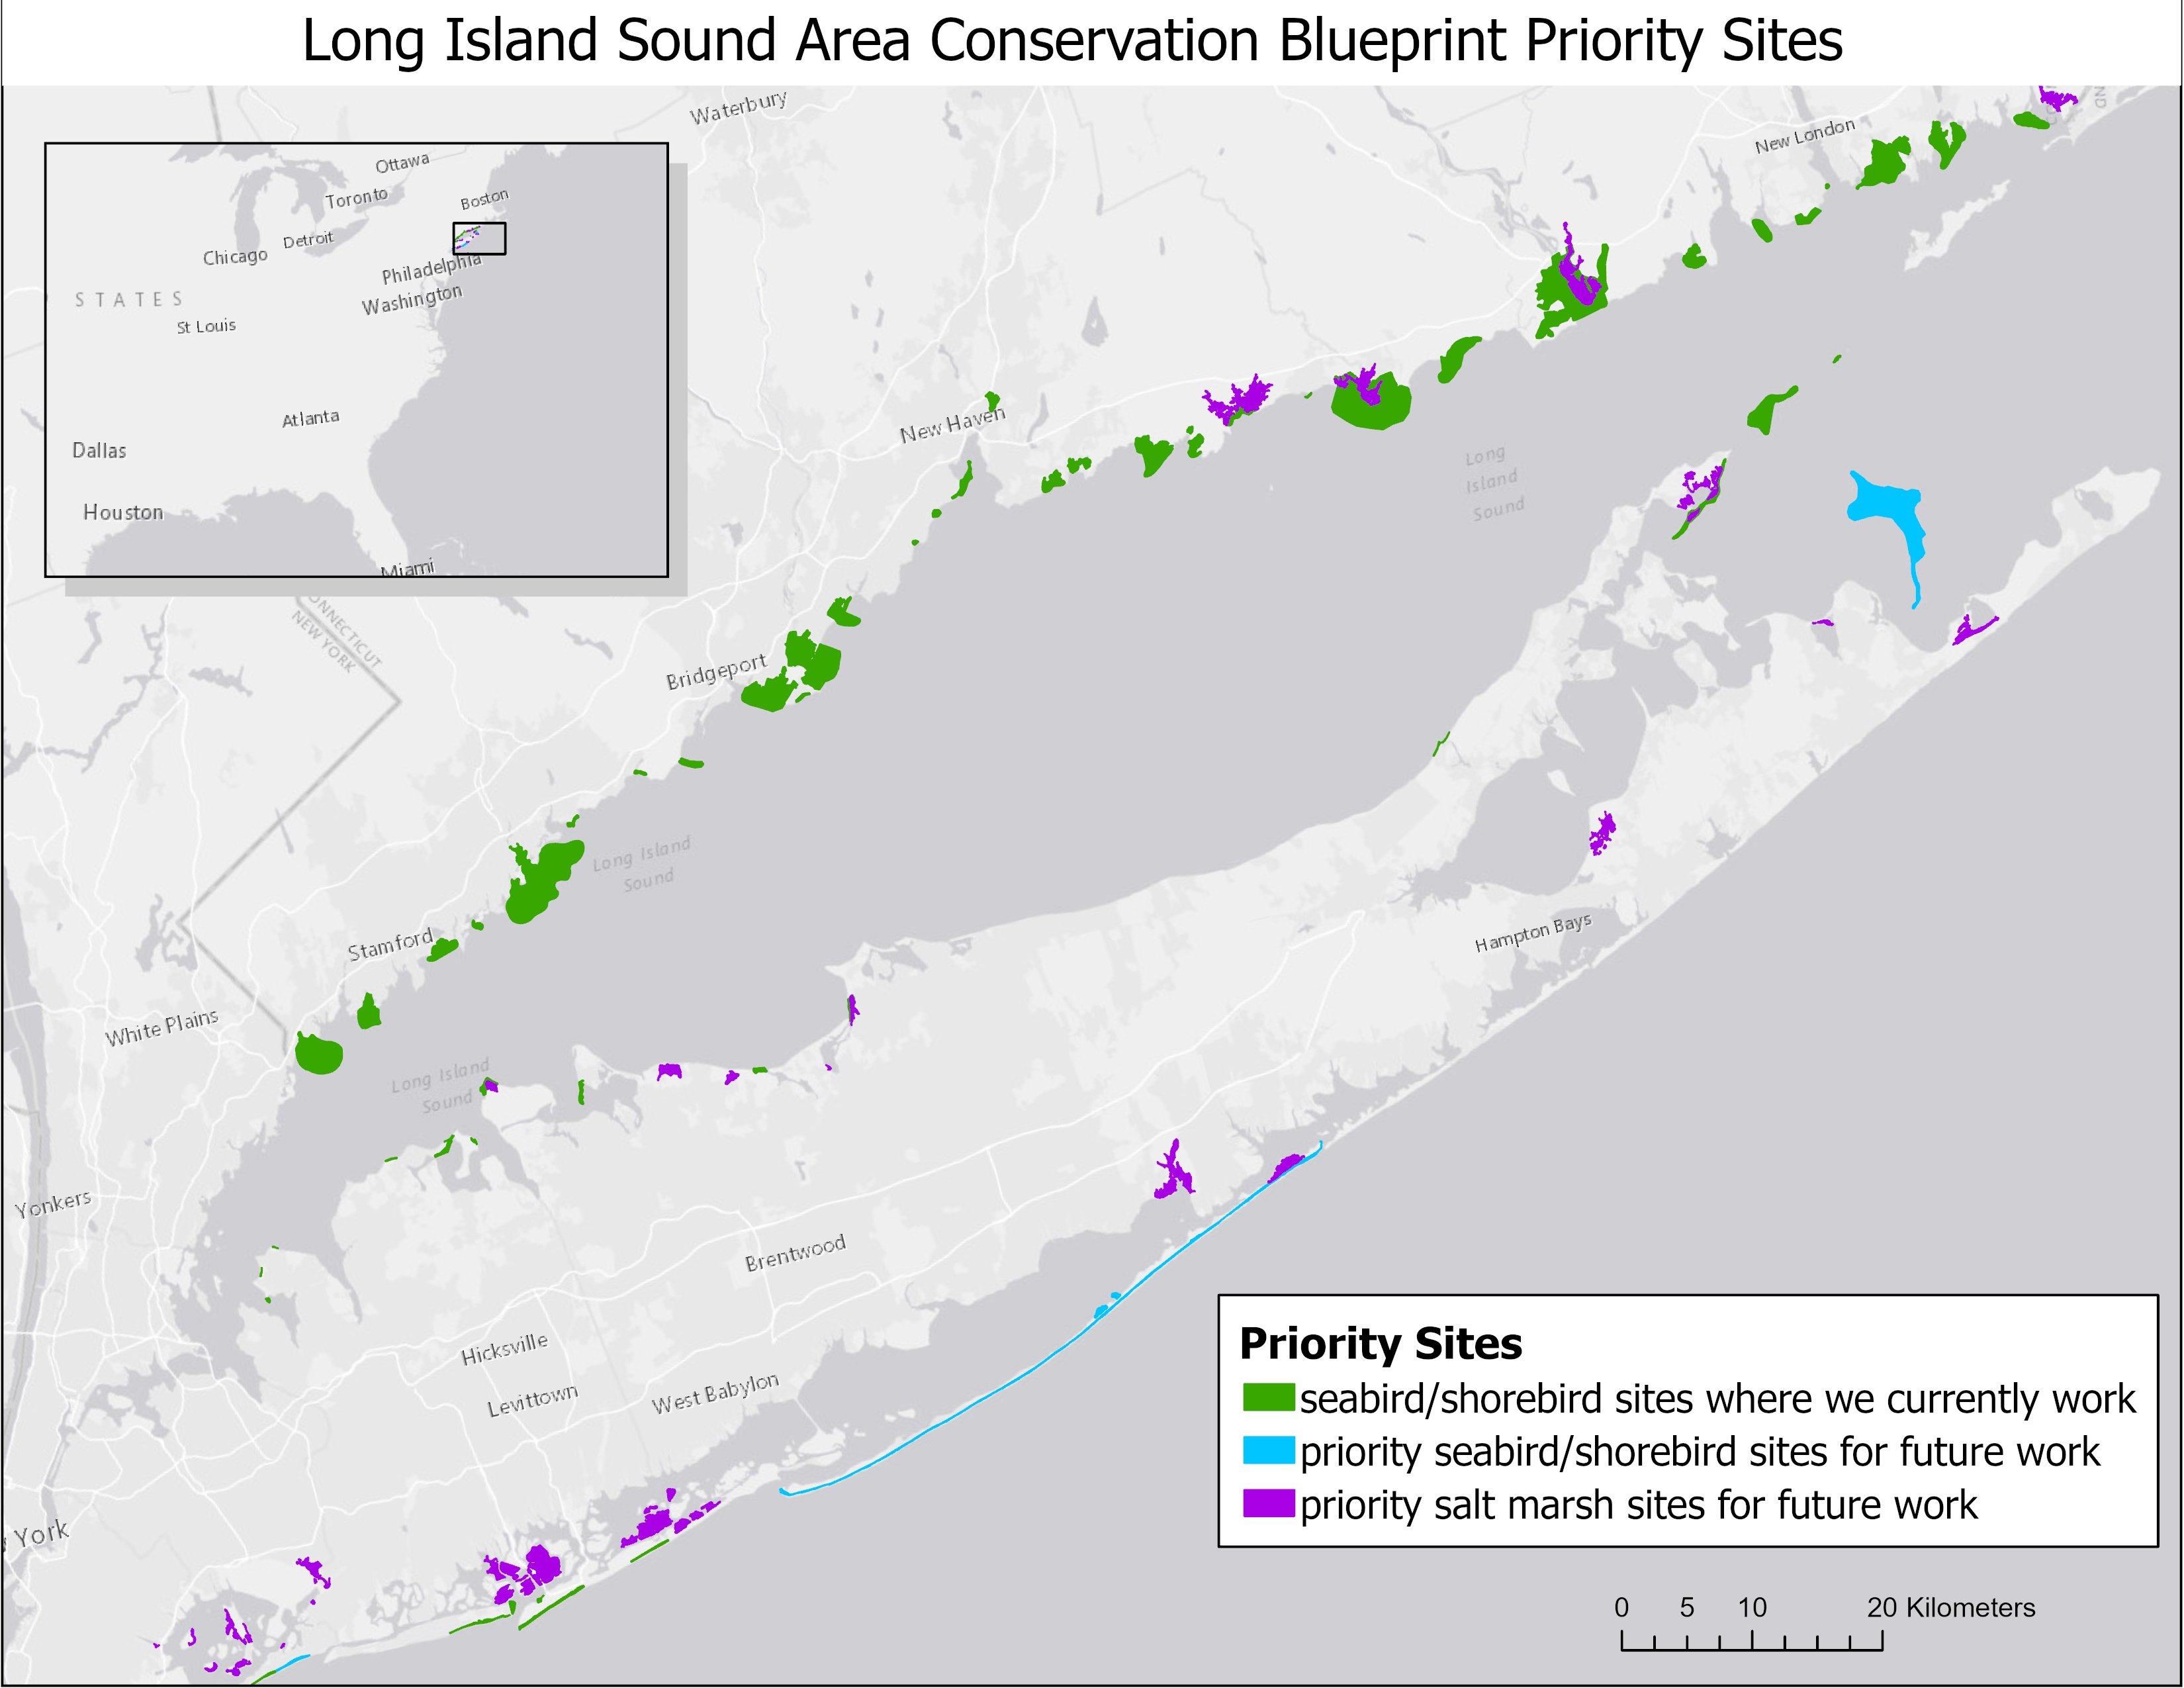 This map shows the sites around the Long Island Sound area where Audubon currently protects sea- and shorebirds, as well as priority sites we identified in our conservation strategy to expand our work in the future. Joanna Grand/Audubon